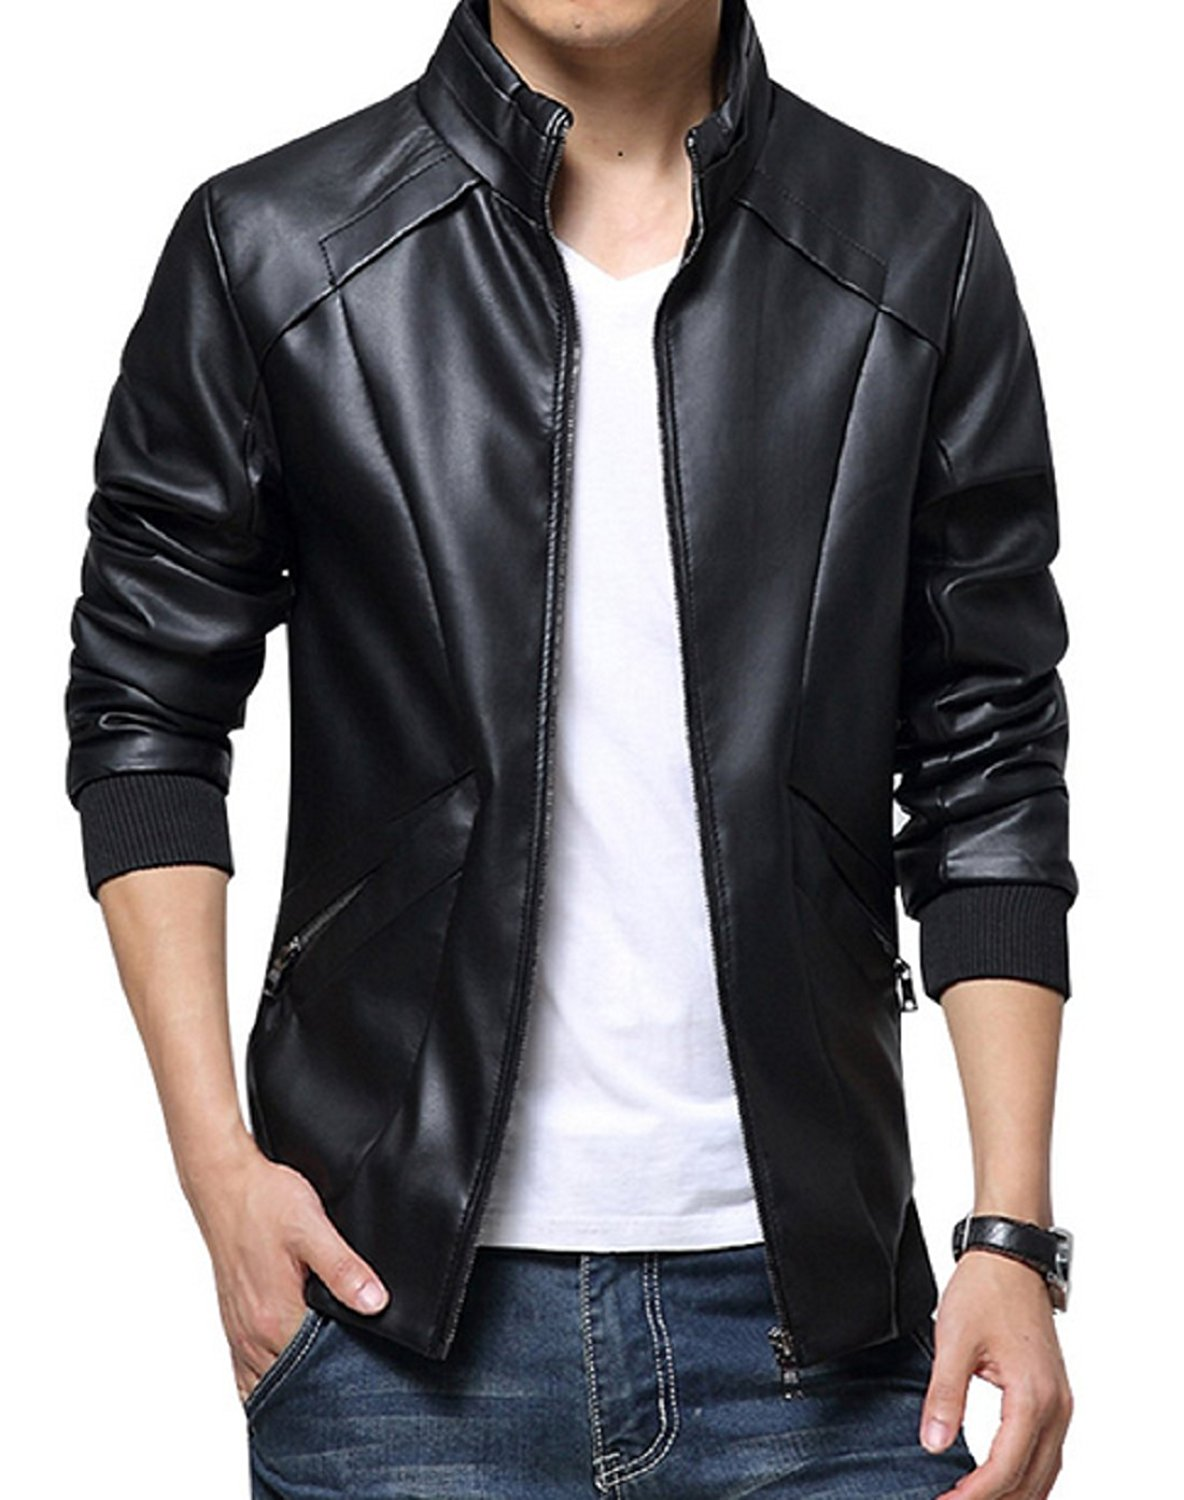 Discover jackets for men and men's coats with ASOS. Shop from a range of styles, from leather jackets, trench and college jackets with ASOS. your browser is not supported. Cheap Monday Denim Jacket In Black and Yellow Wash. £ You've viewed 72 of 1, products. Load more.